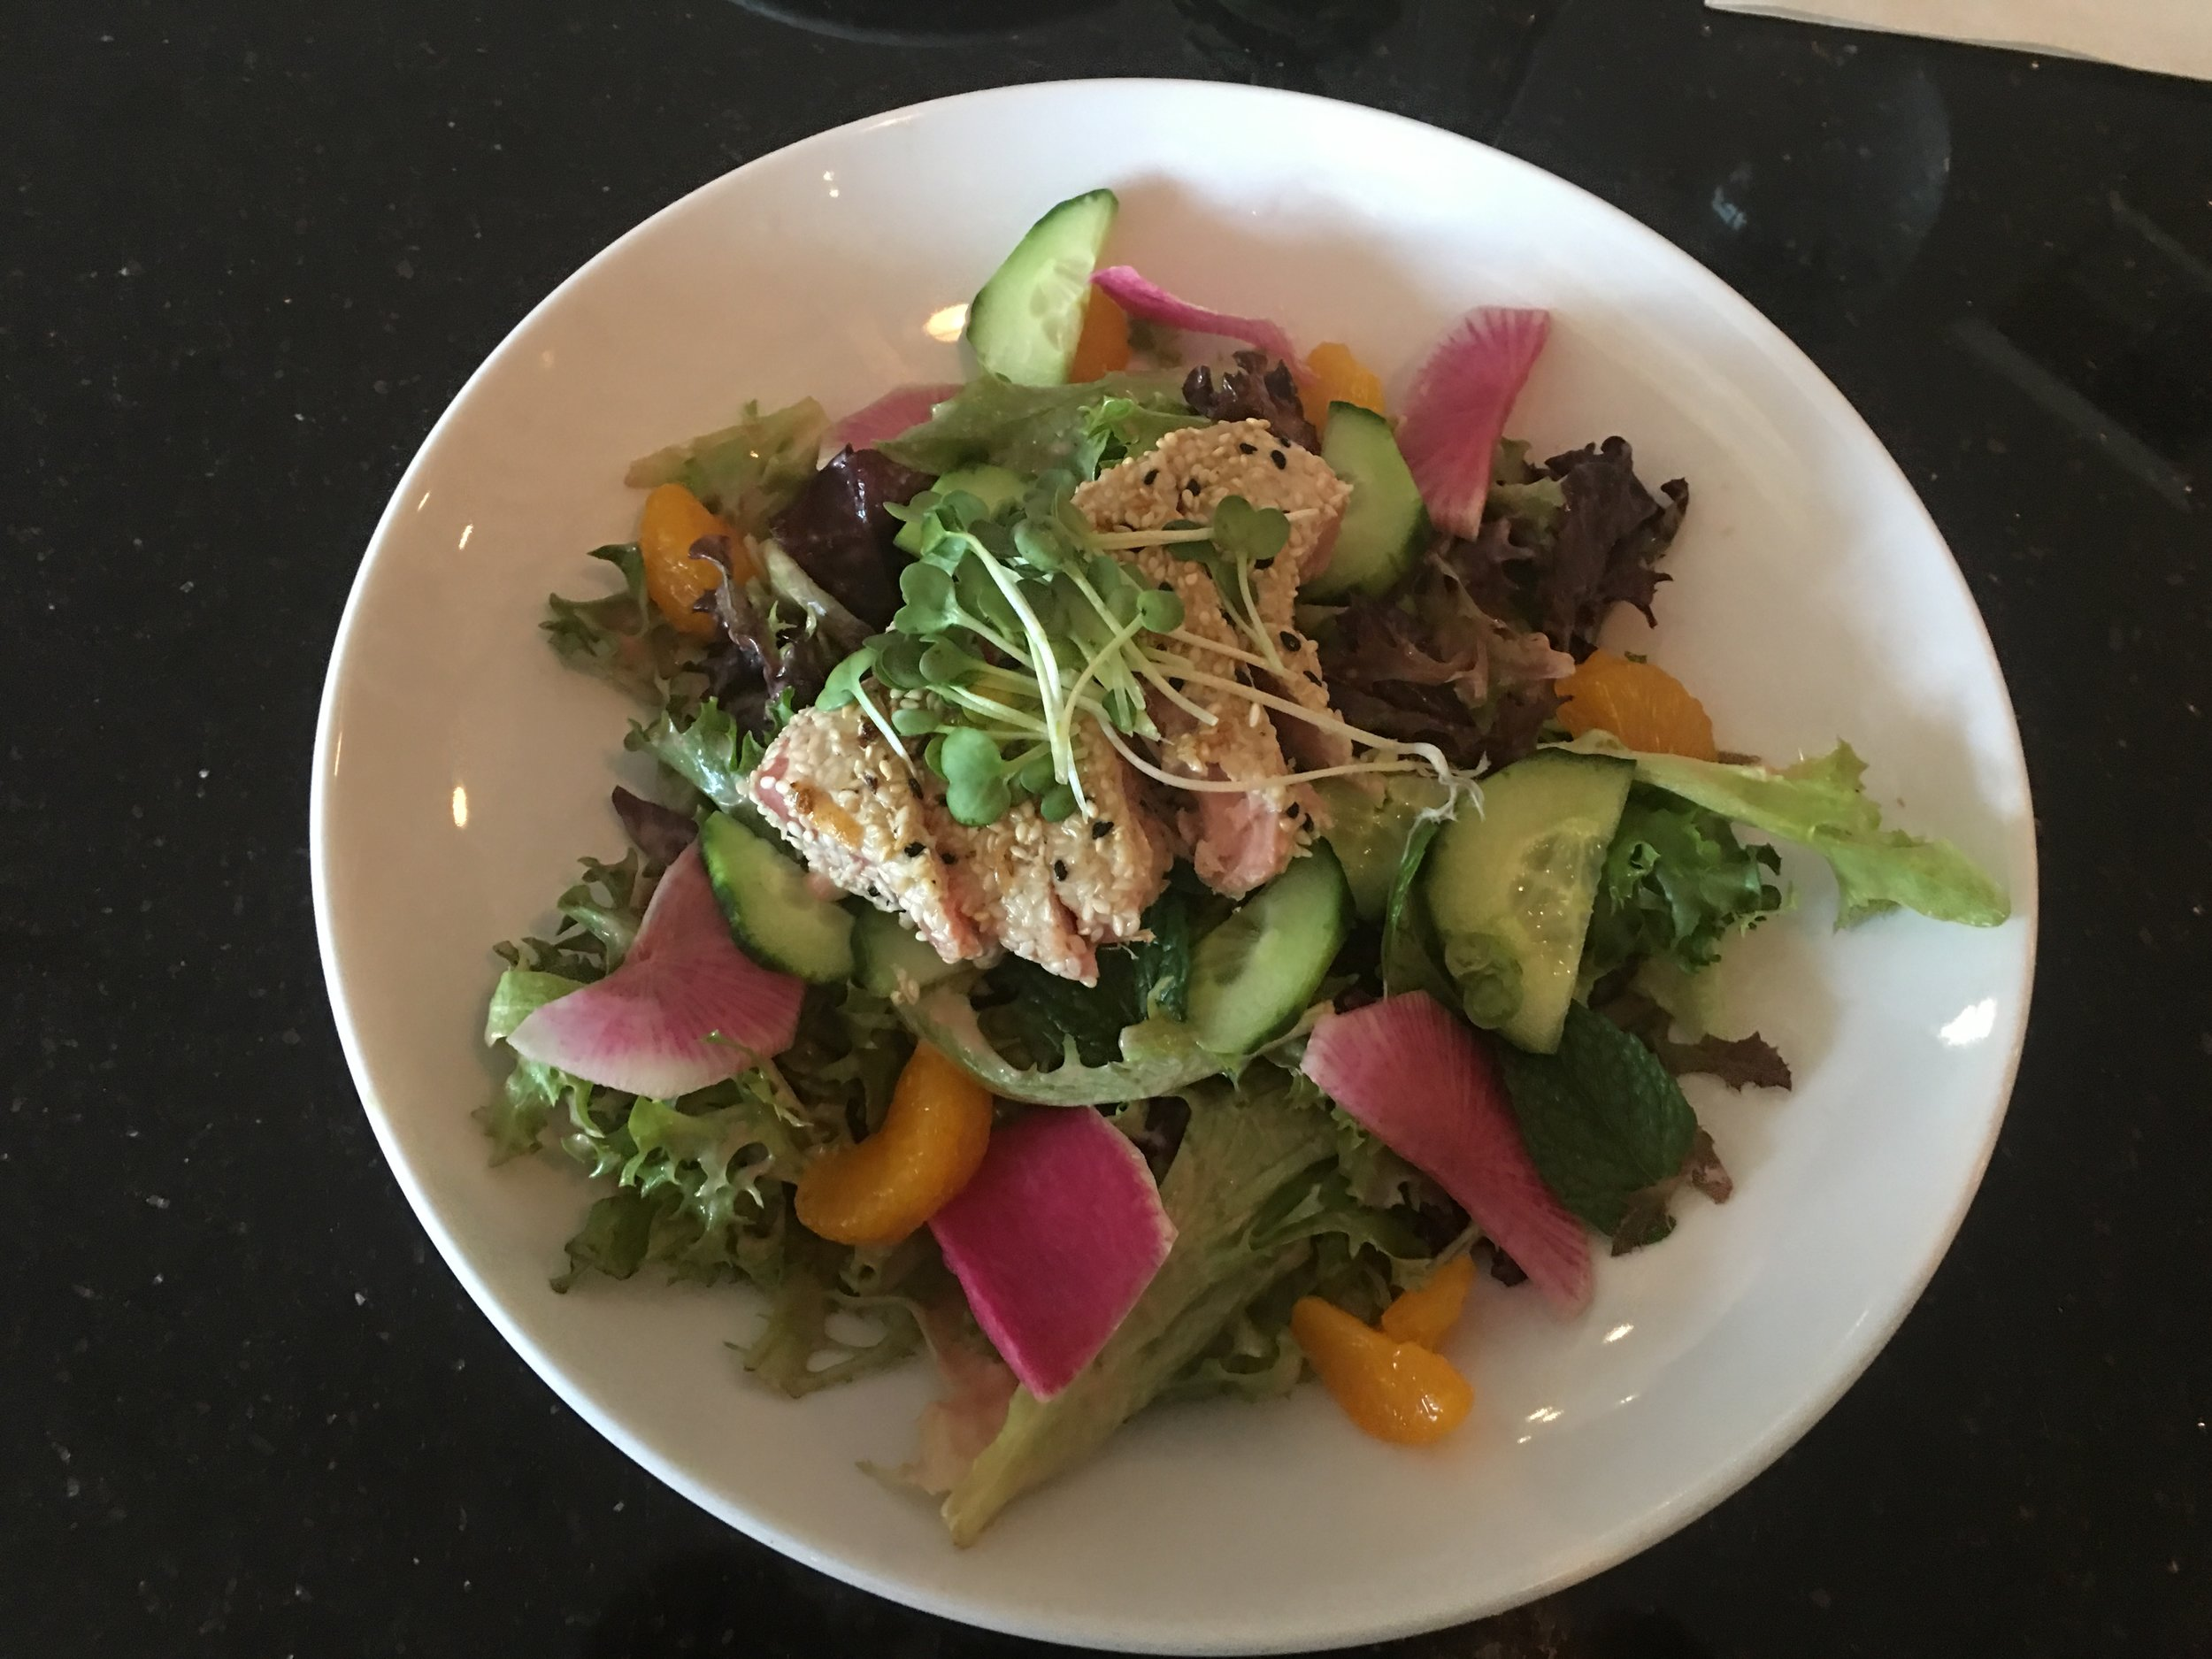 Sesame Crusted Seared Ahi Salad : Ahi, Tuna , Watermelon Radish, mandarin orange, English Cucumber, radish sprouts, basil, mint, mixed lettuce with a Blood Orange vinaigrette Dressing